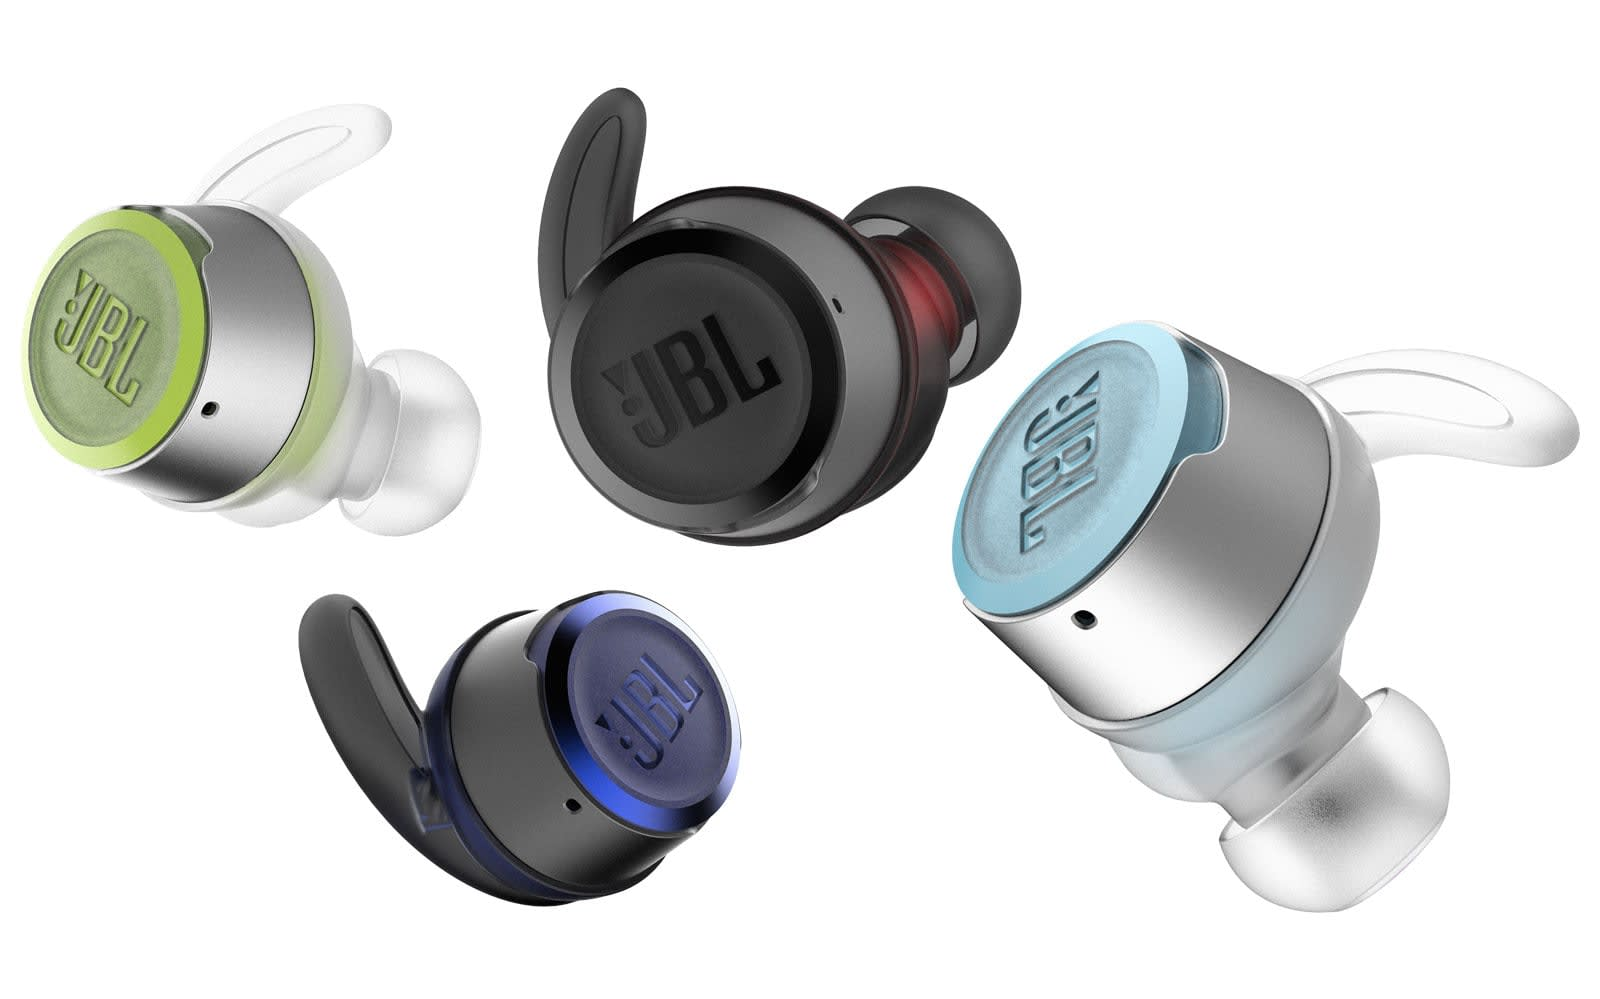 15b607bb9e3 JBL unveils four new options for true wireless earbuds